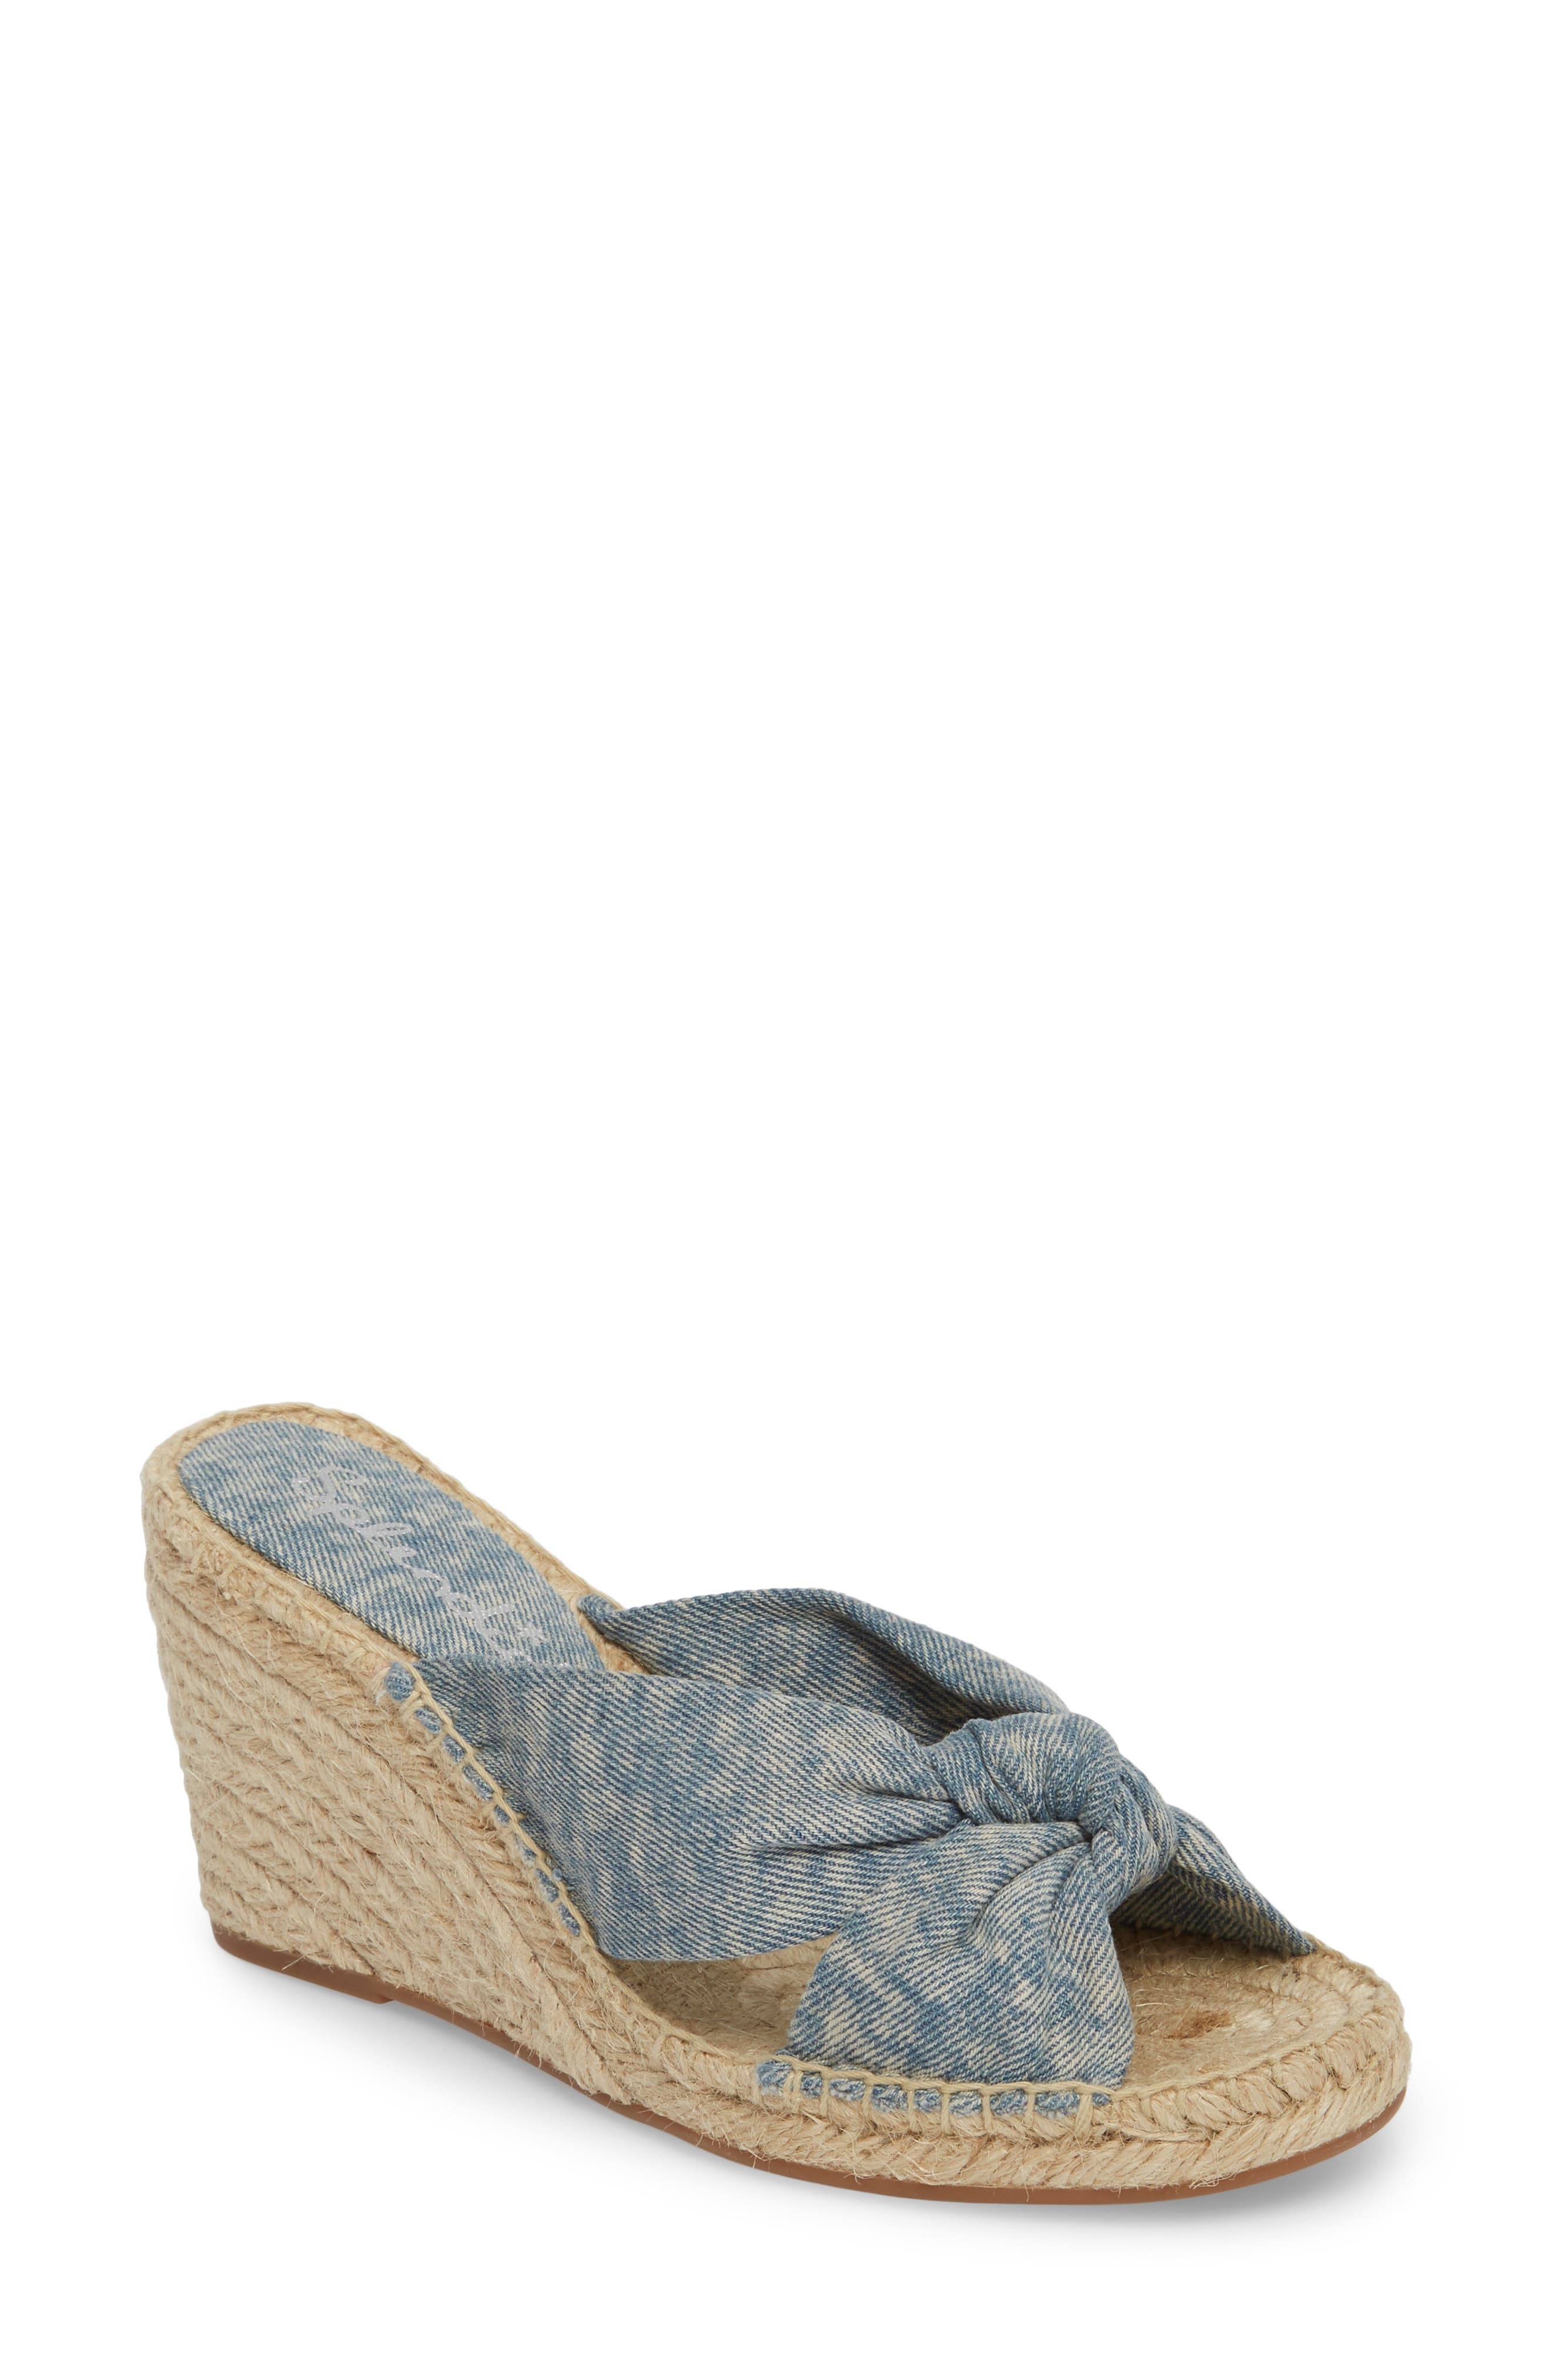 Alternate Image 1 Selected - Splendid Bautista Knotted Wedge Sandal (Women)